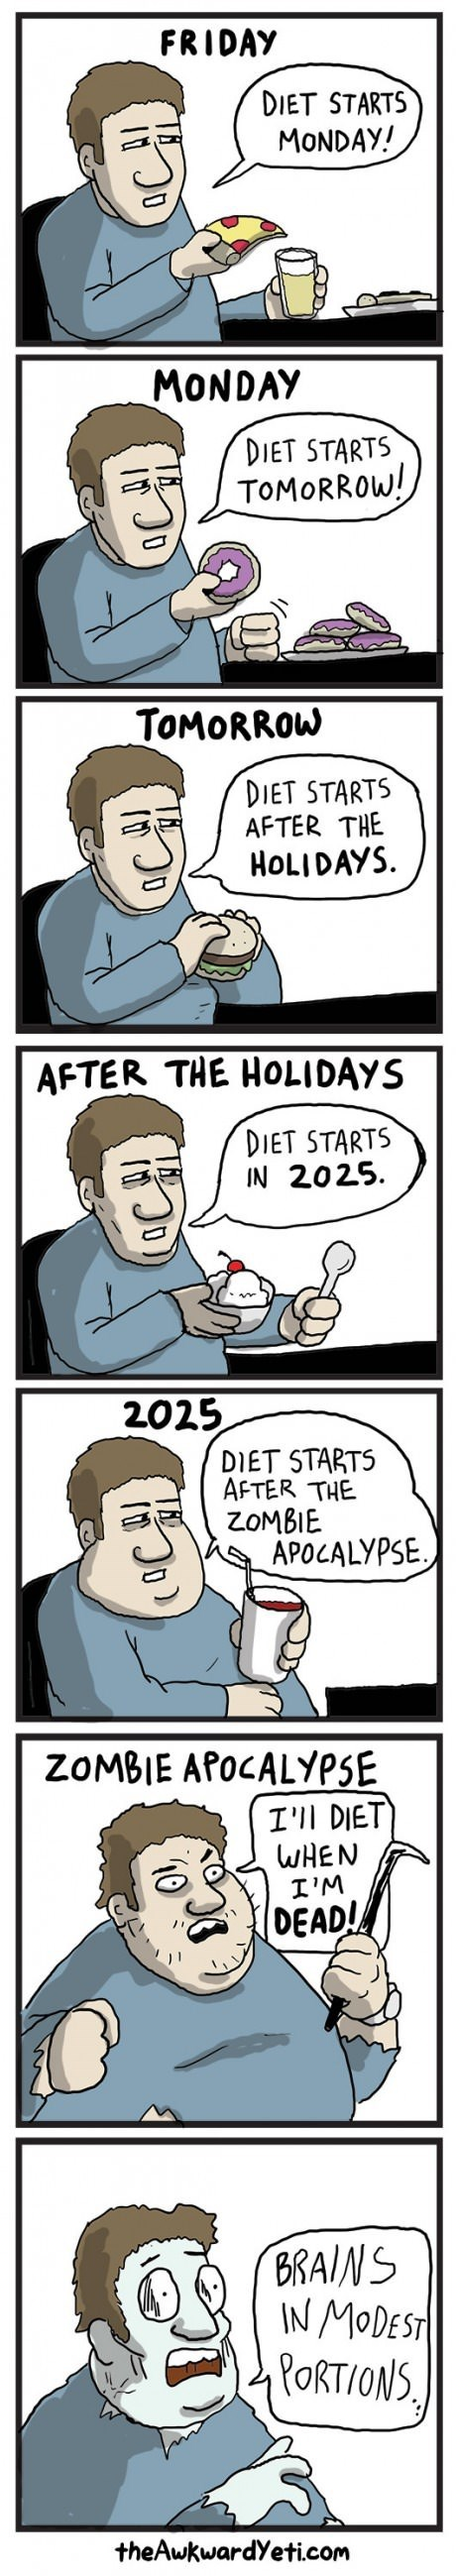 This Sad Truth About Diet Plans